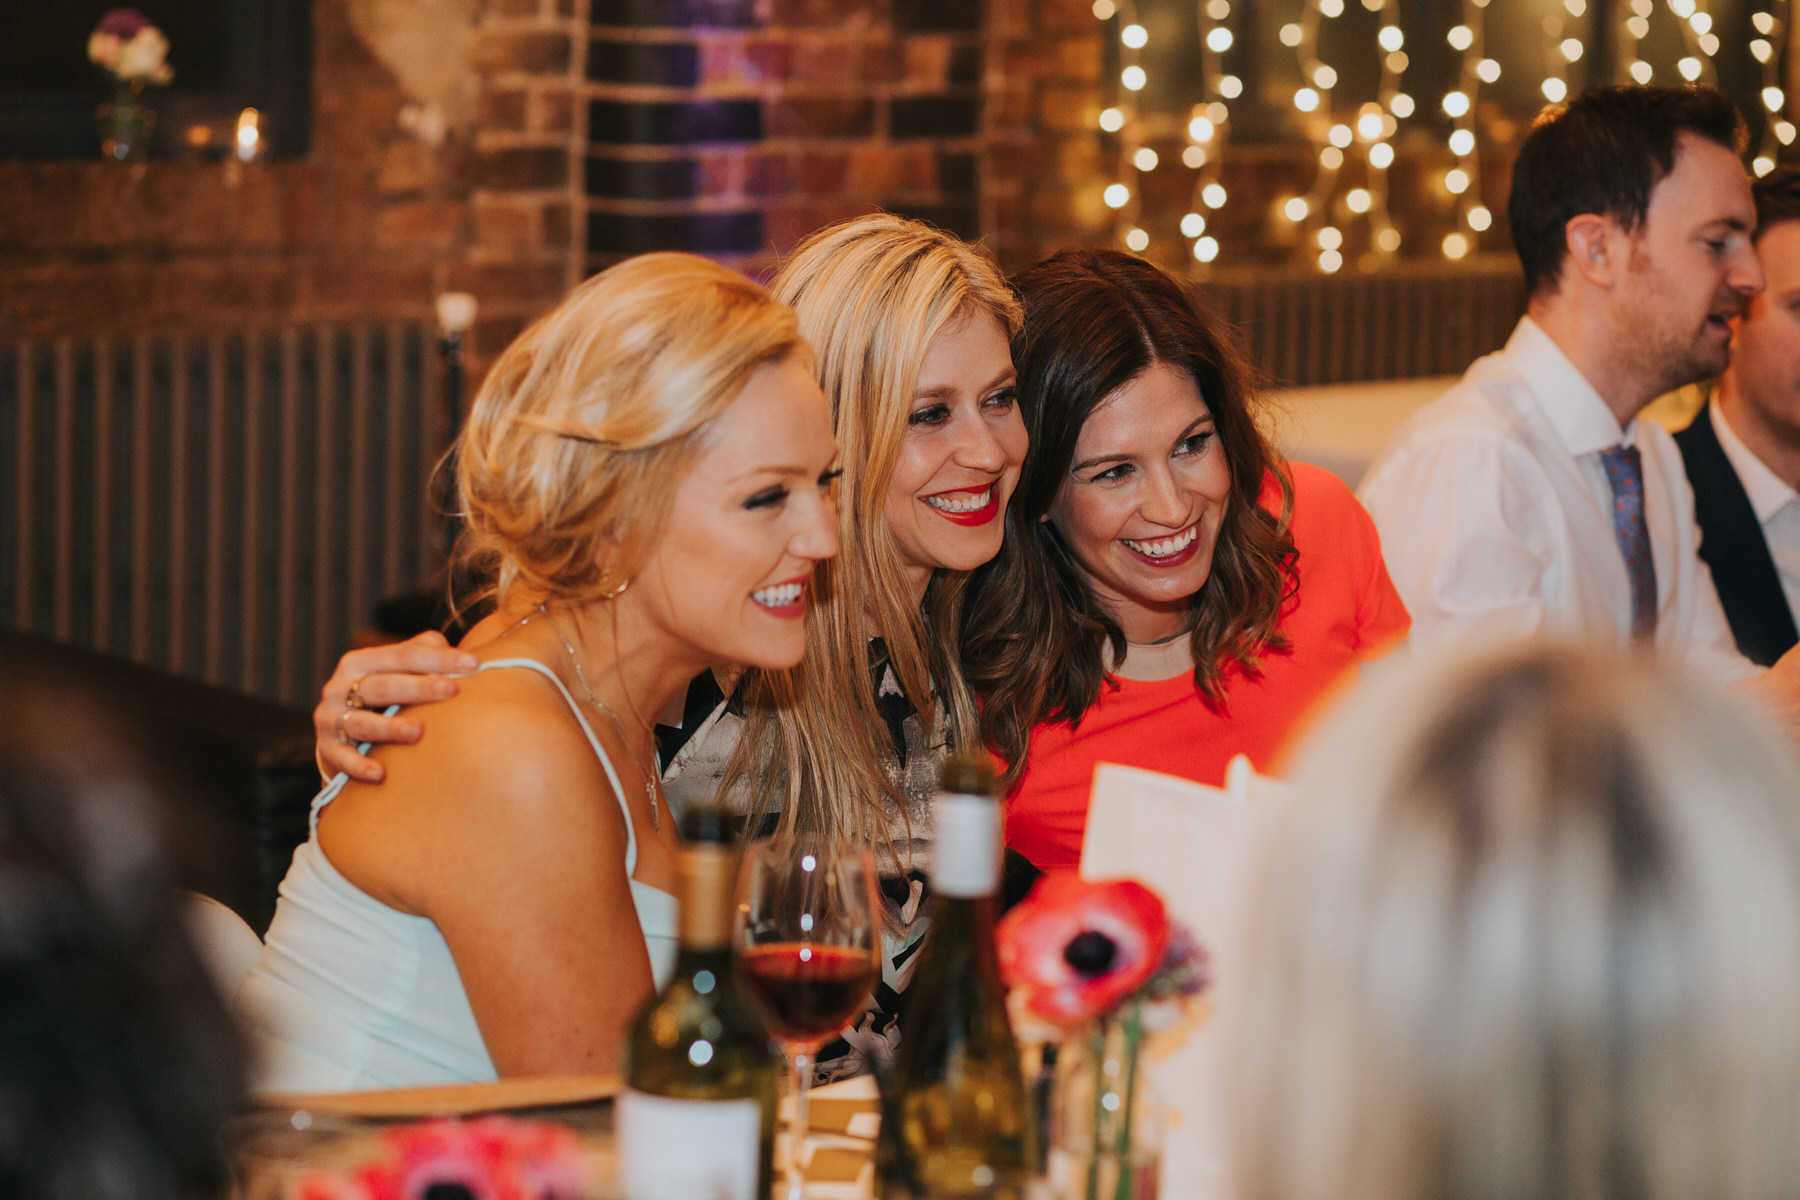 170-St Chads Place bride posing with friends.jpg